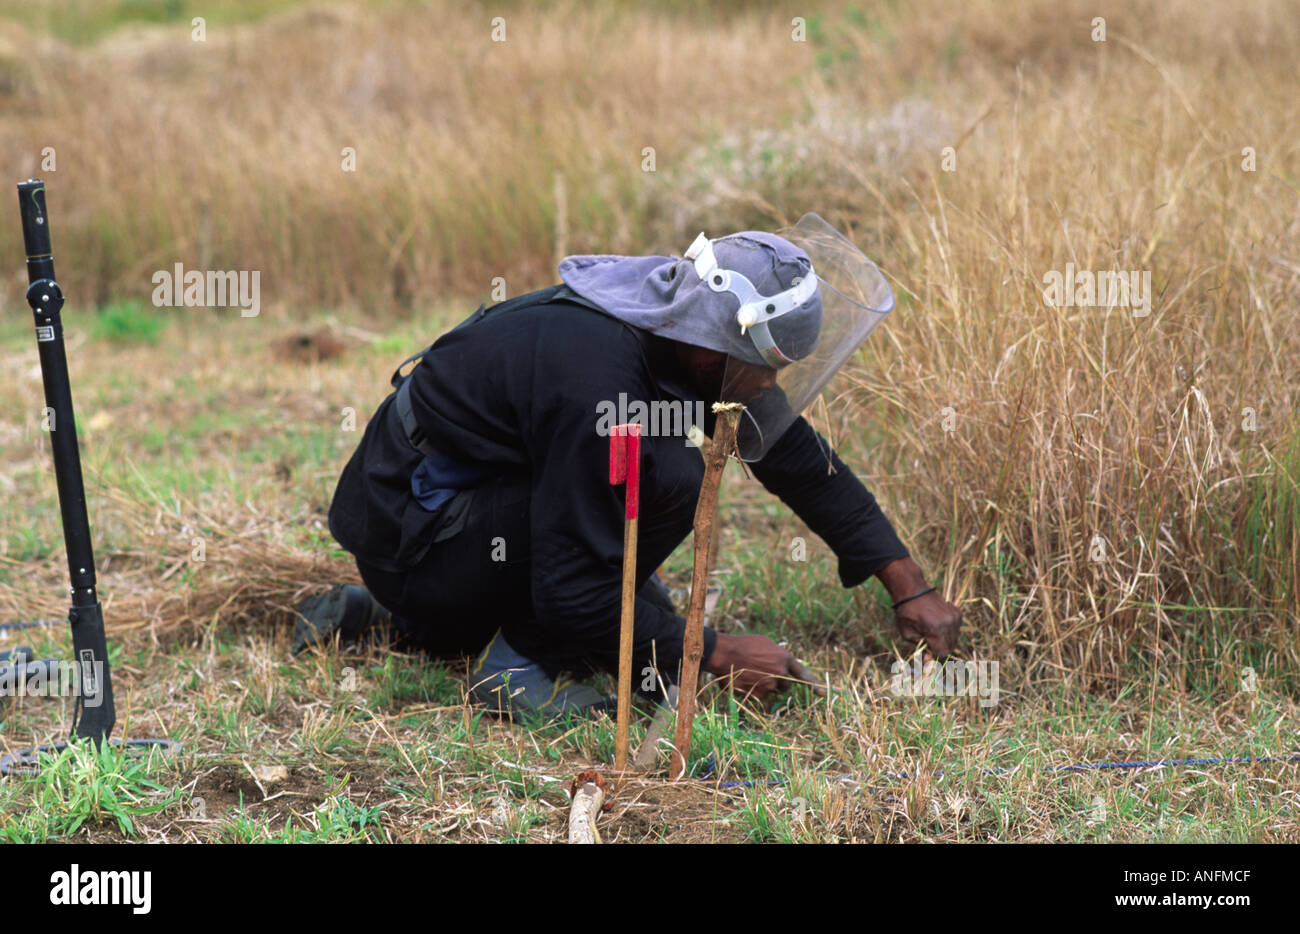 Searching for land mines. Mozambique - Stock Image